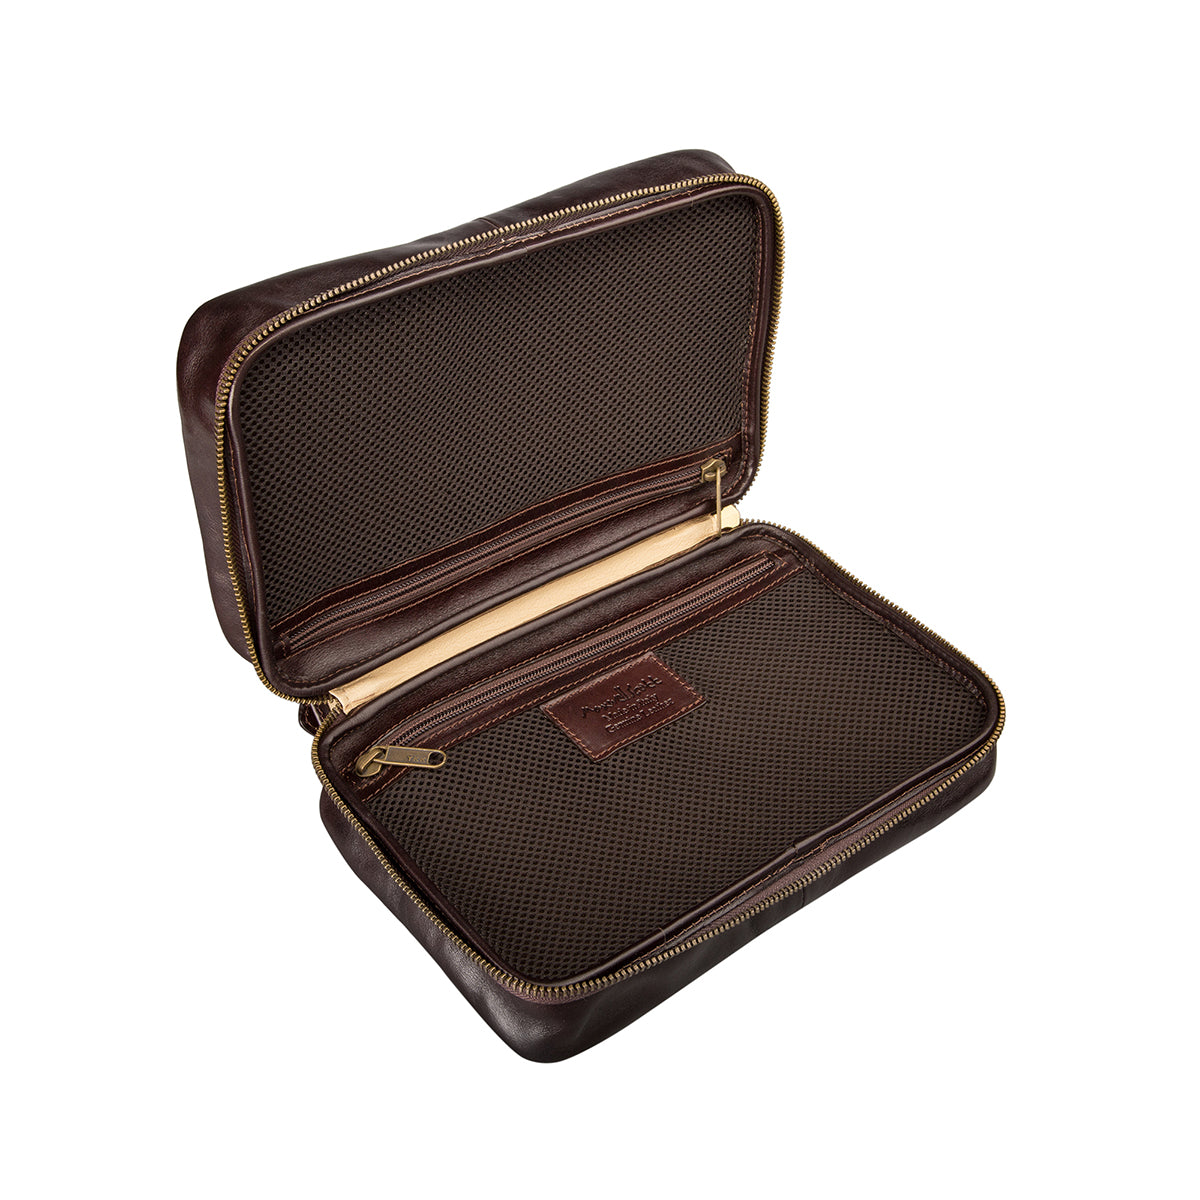 Image 5 of the 'Cascina' Chocolate Veg-Tanned Leather Makeup Case